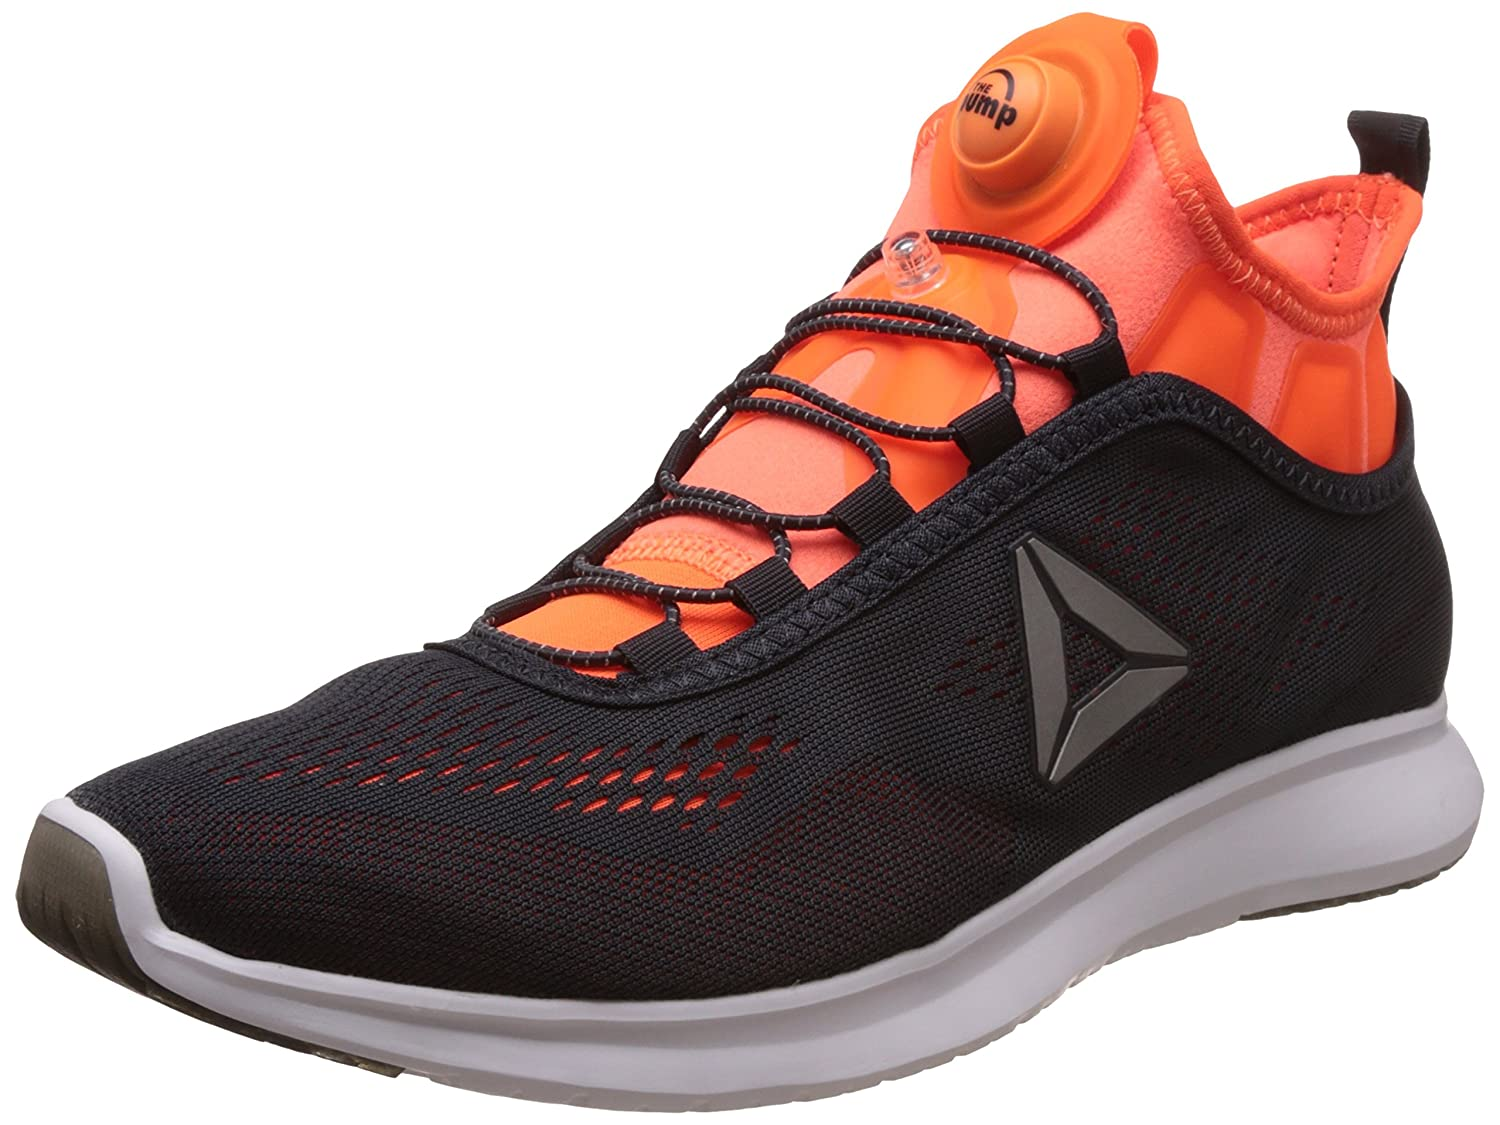 Reebok Men's Pump Plus Tech Running Shoes